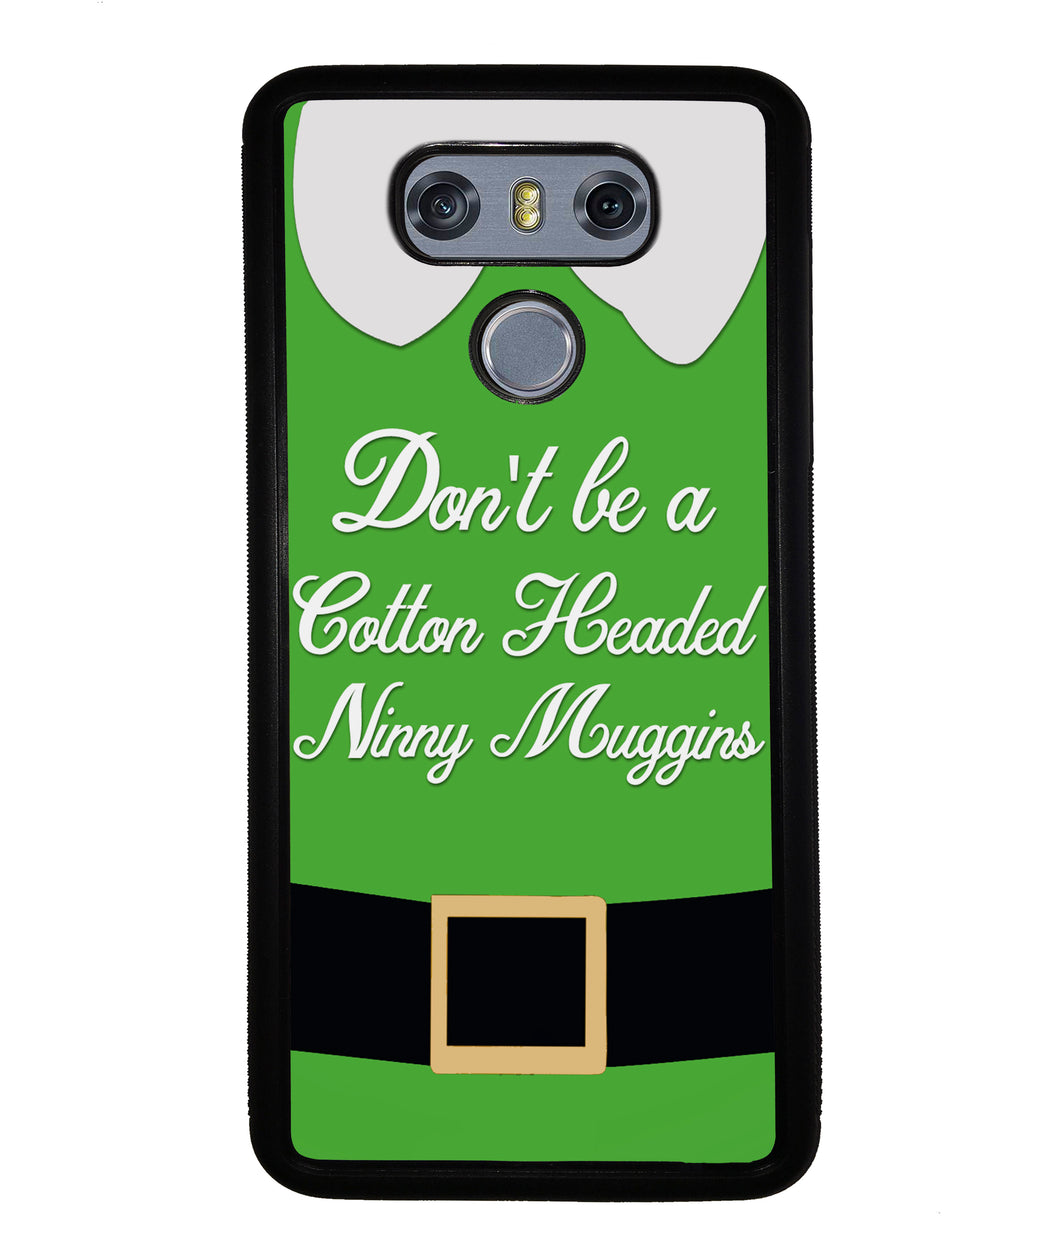 Christmas Elf Movie Quote Cotton Headed Ninny Muggins | LG Phone Case